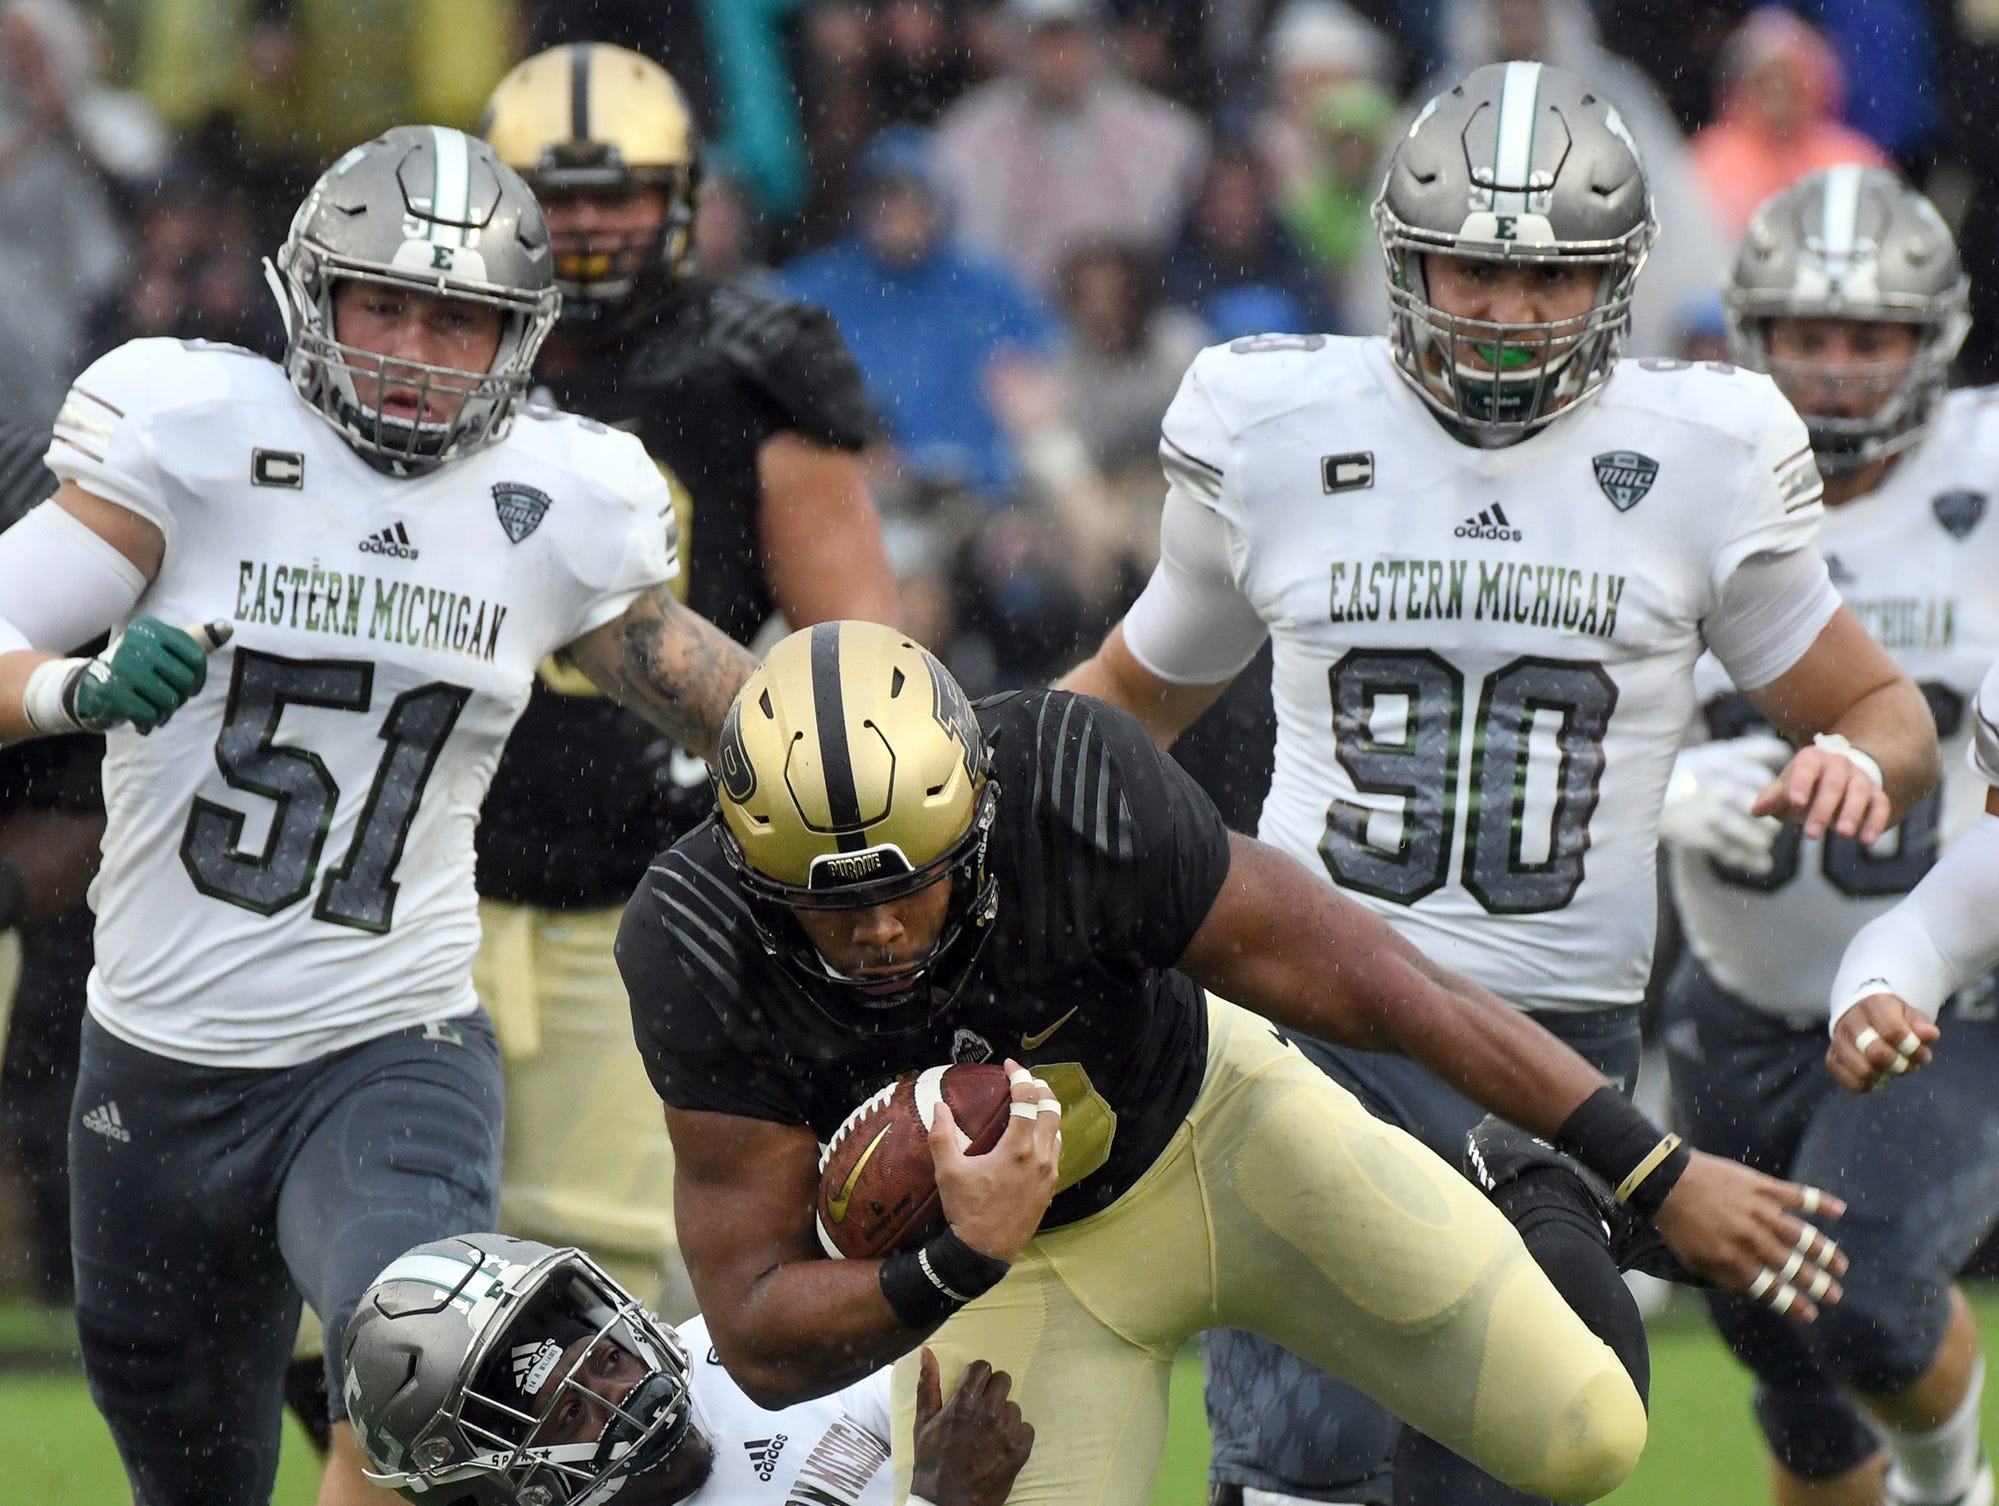 Purdue's Markell Jones runs for yardage against Eastern Michigan in West Lafayette on September 8, 2018. Purdue lost 20-19.